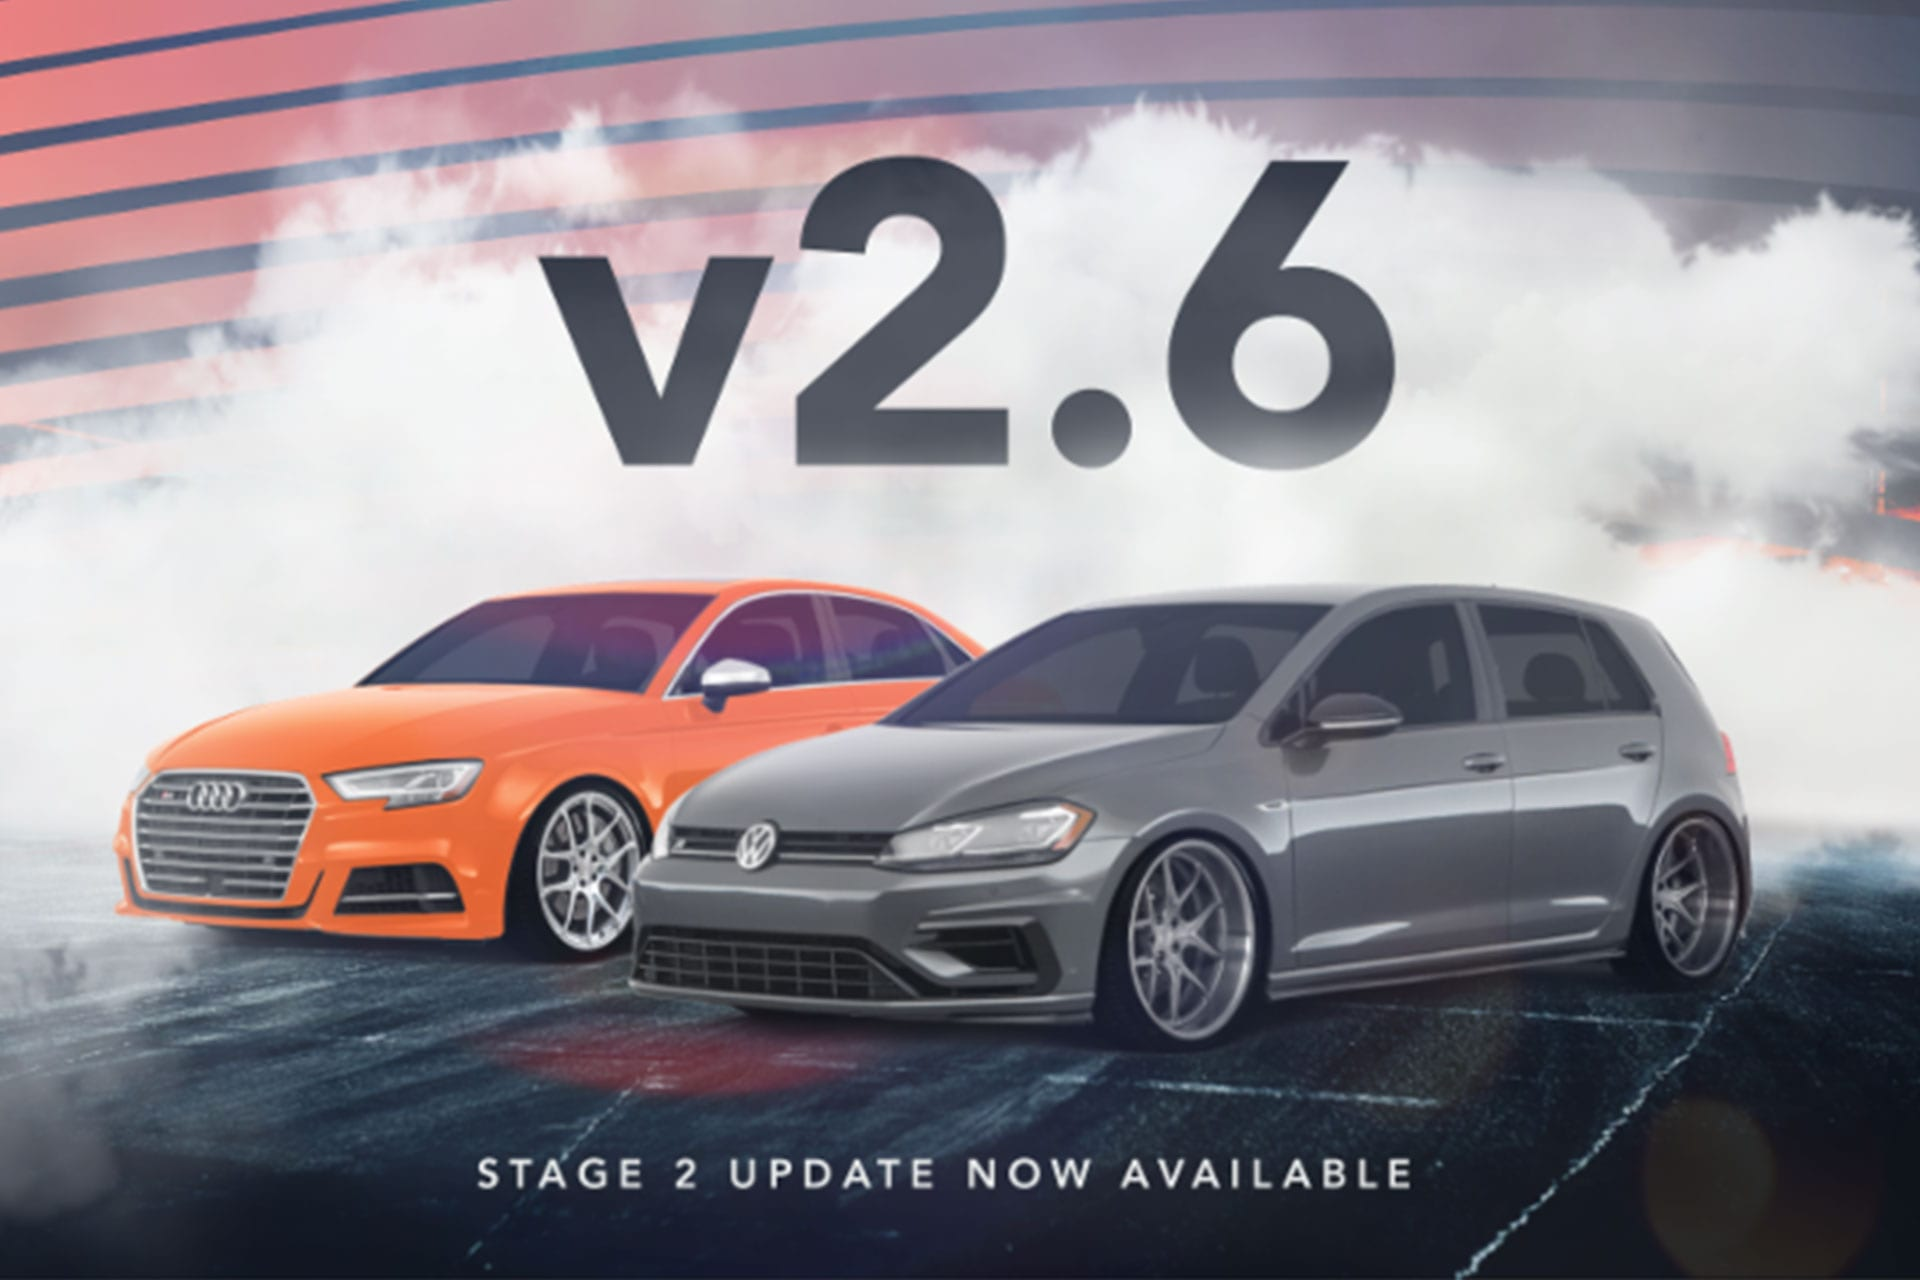 APR Stage 2 v2.6 Available!